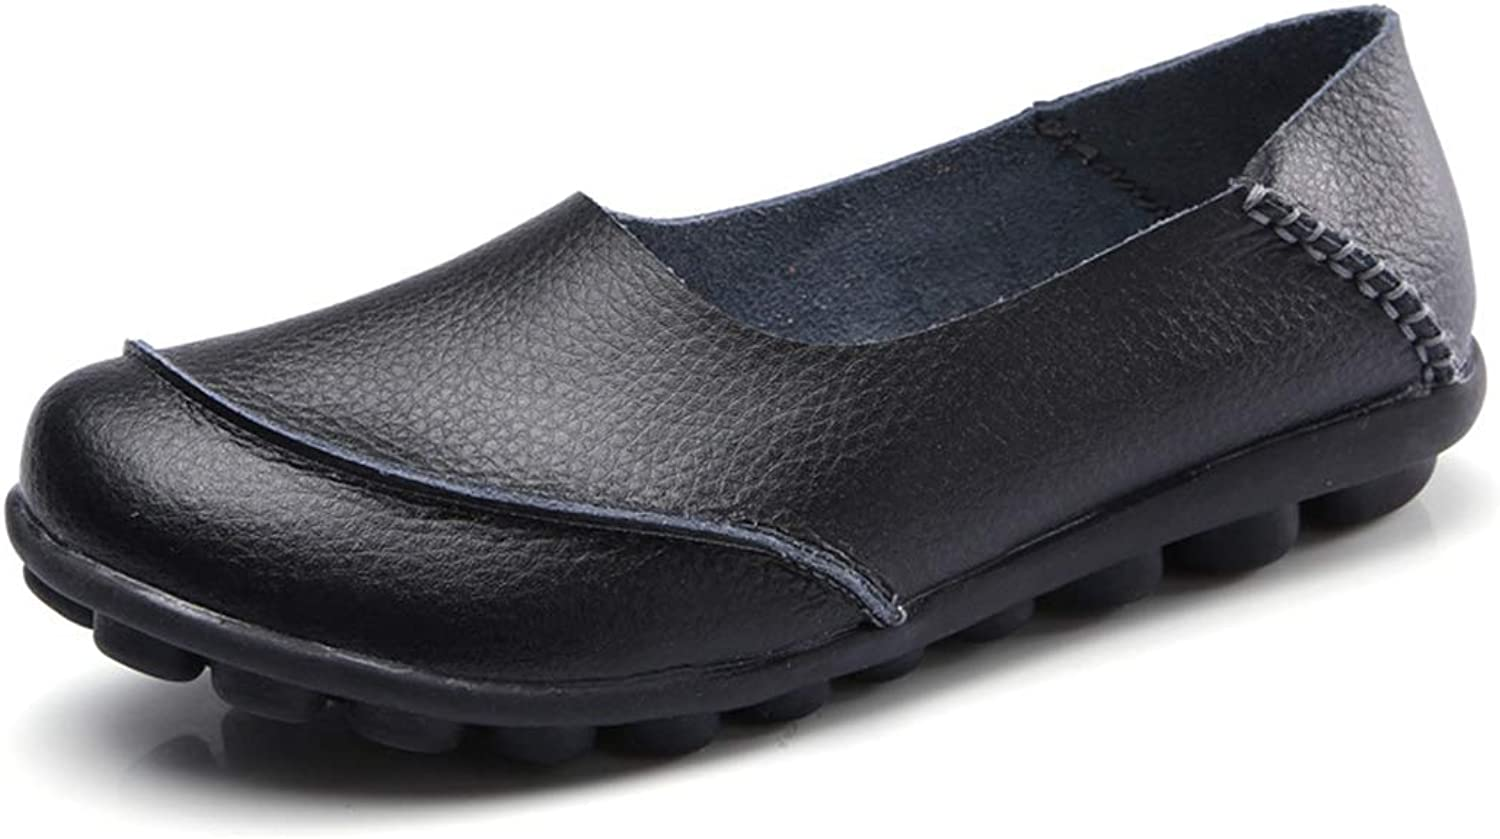 Drew Toby Women's Flats,Simple Solid color Anti-Slip Spring Classic Daily shoes